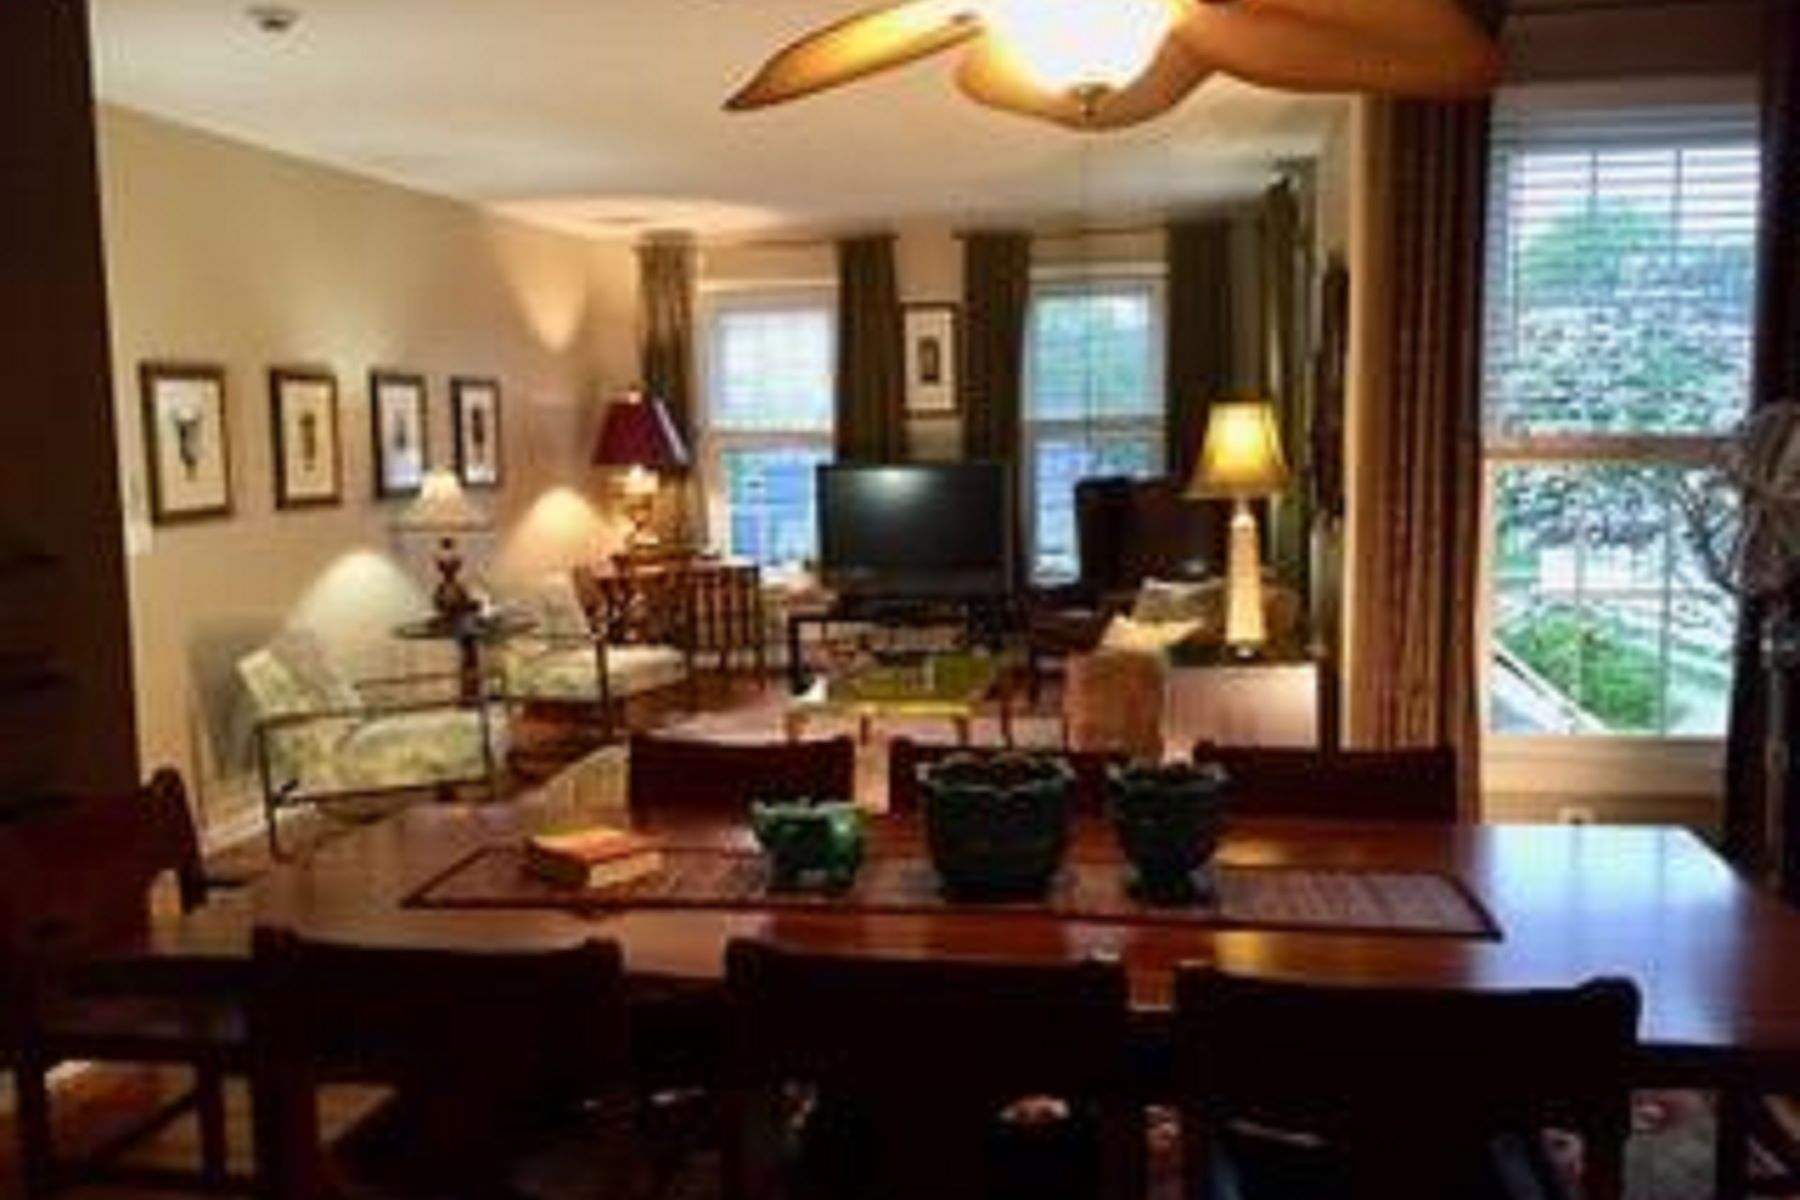 Multi-Family Home for Sale at Great Victorian 2 Family 150 Magnolia Ave, Hillsdale, New Jersey 07642 United States